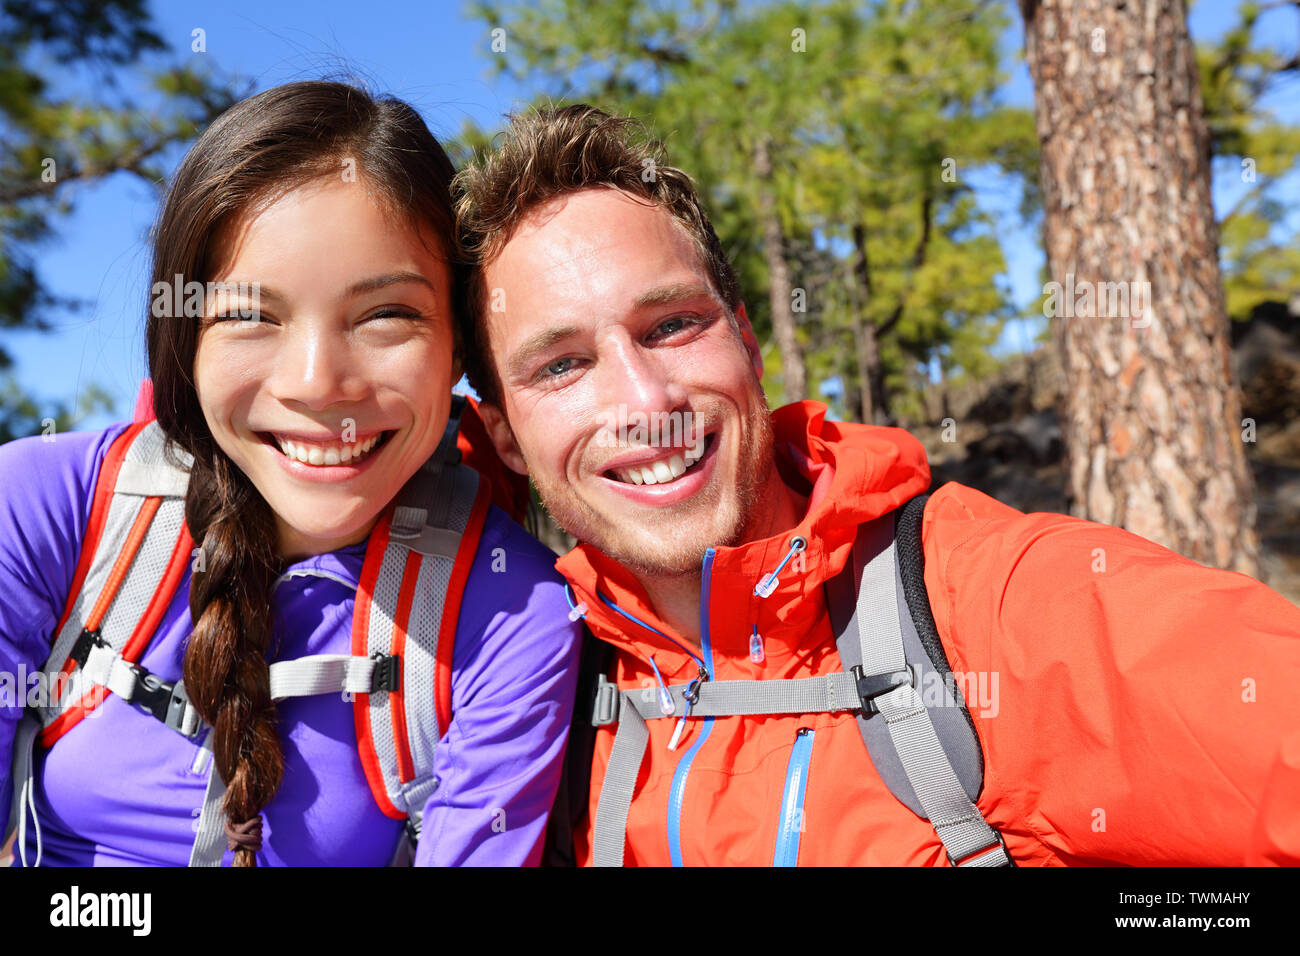 Selfie couple taking self-portrait hiking using smart phone camera in nature. Happy couple taking self-portrait photo picture looking at camera smilin - Stock Image